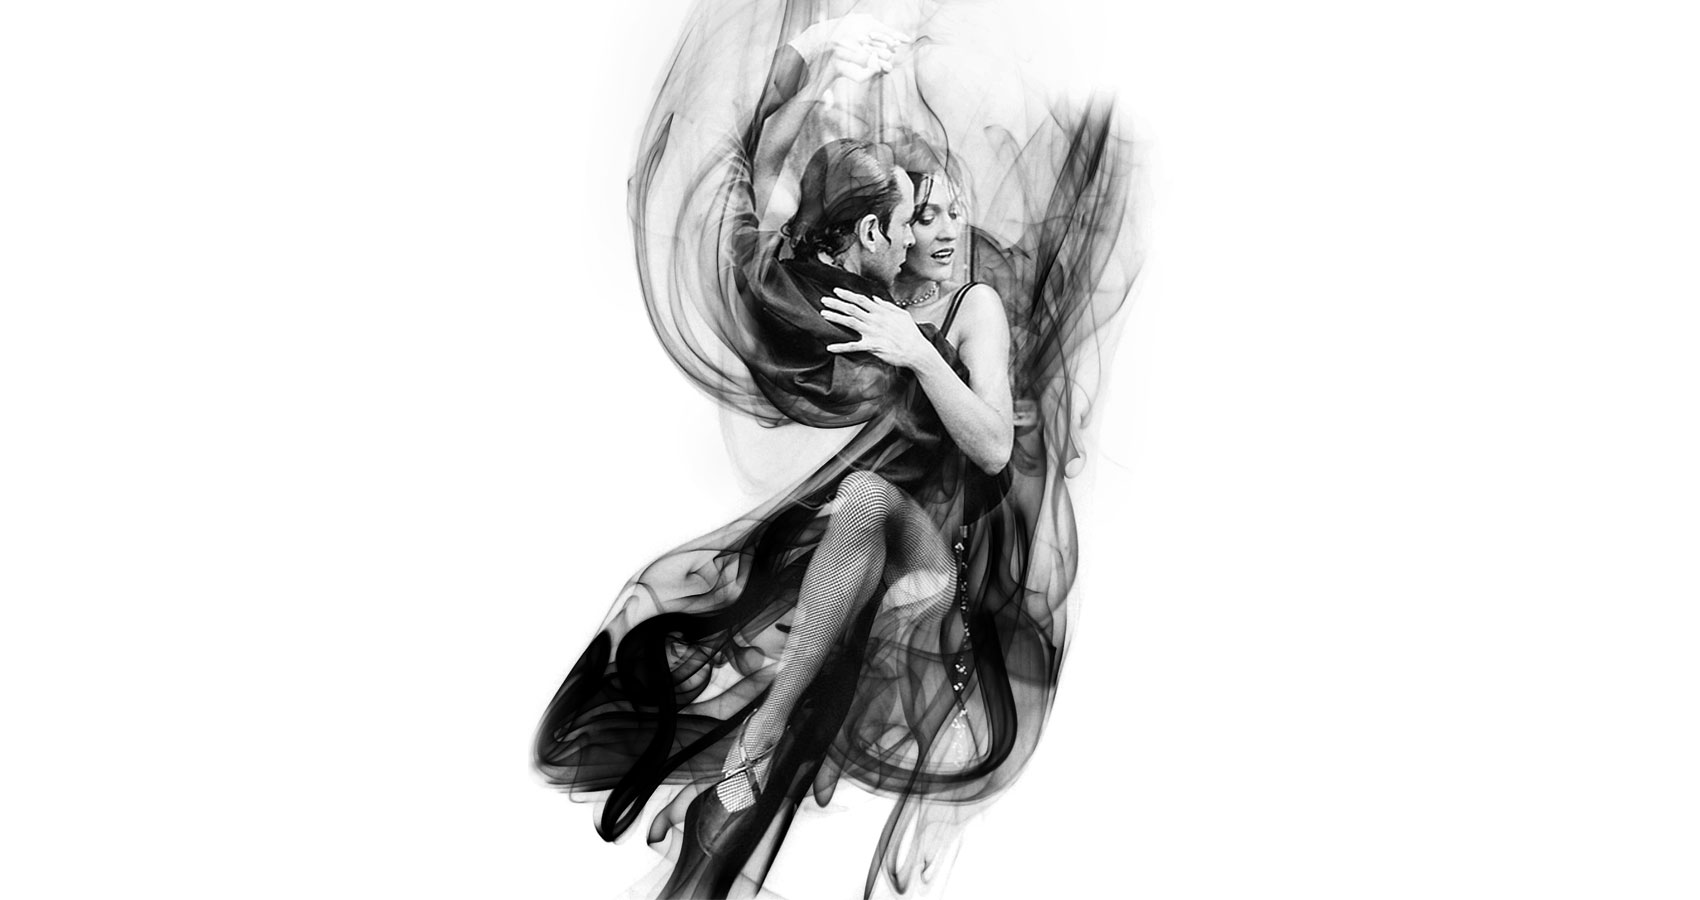 Dancing In The Shadows by Jodie Kendrick at Spillwords.com